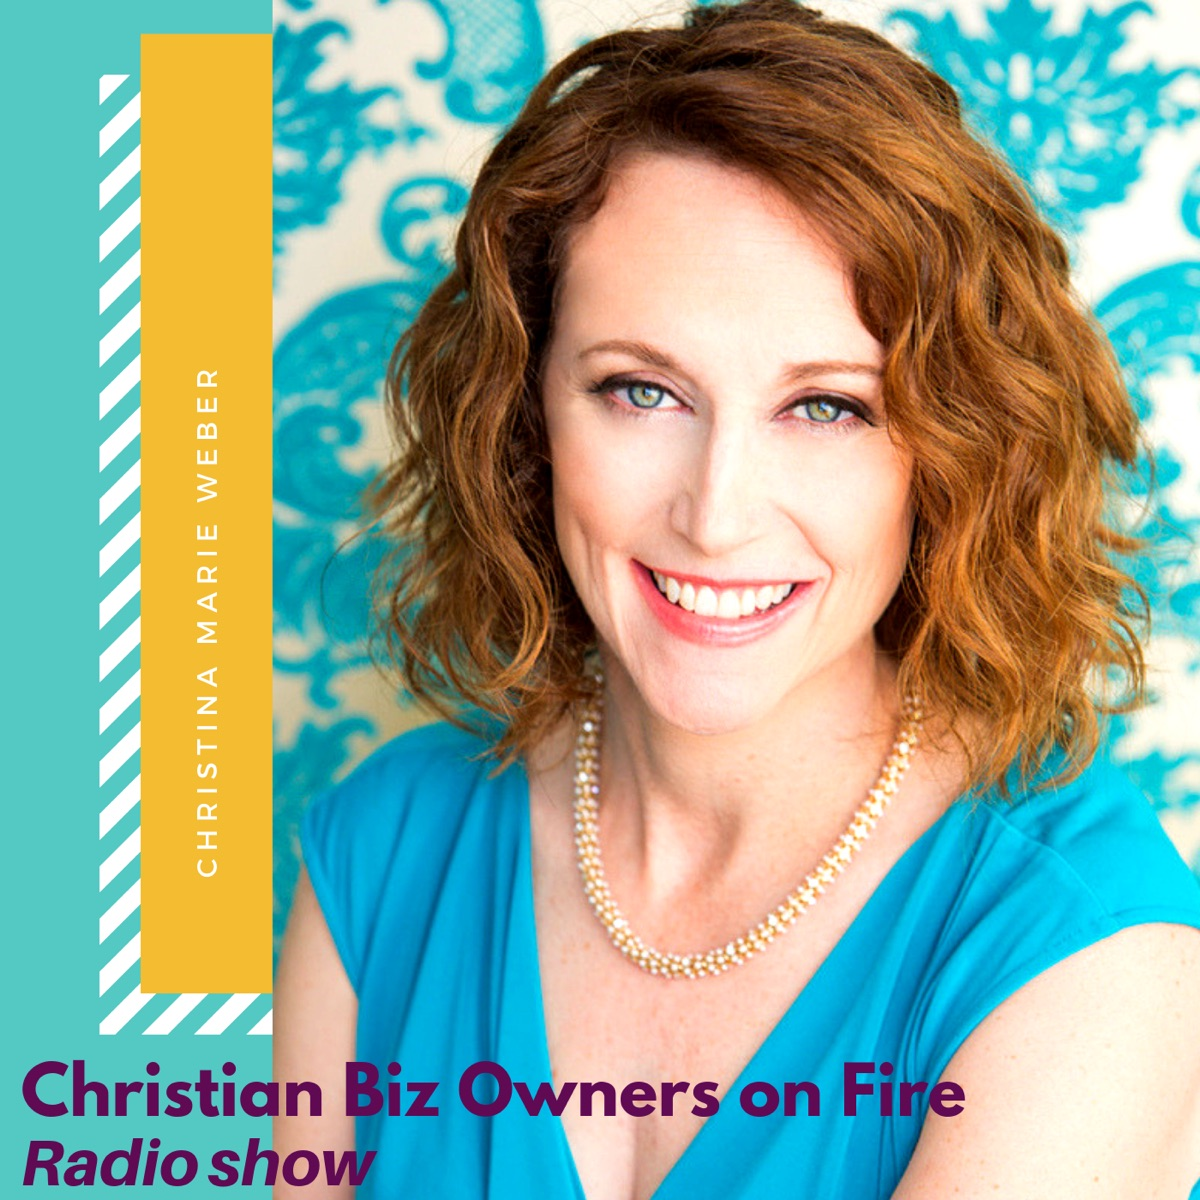 Christian Biz Owners On Fire